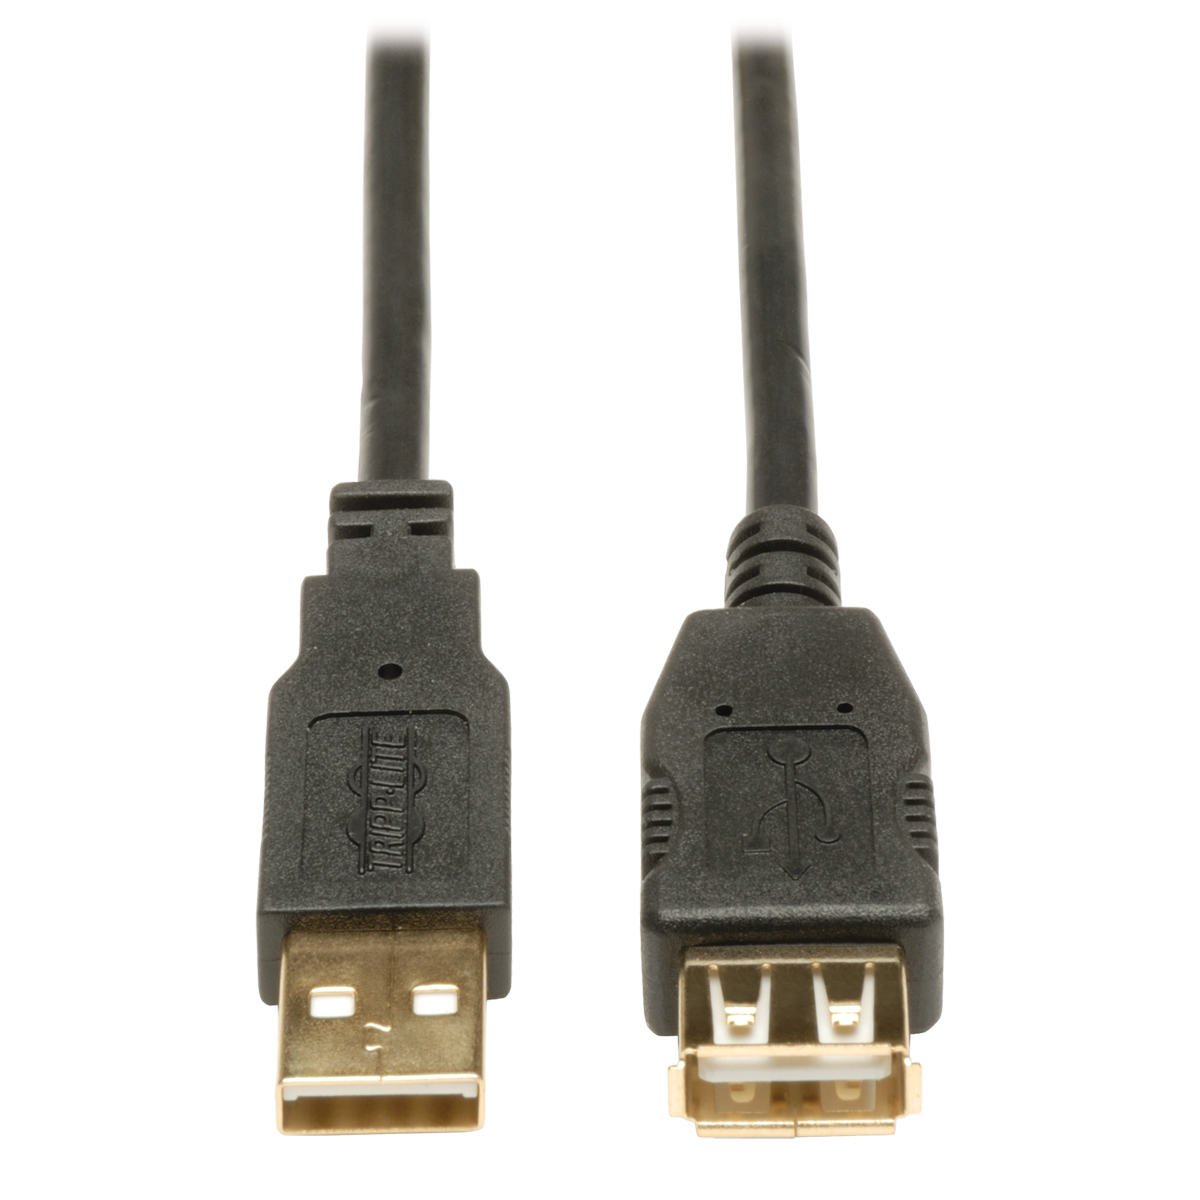 TRIPP LITE USB 2.0 HI-SPEED EXTENSION CABLE (A M/F), 1.83 M (6-FT.)